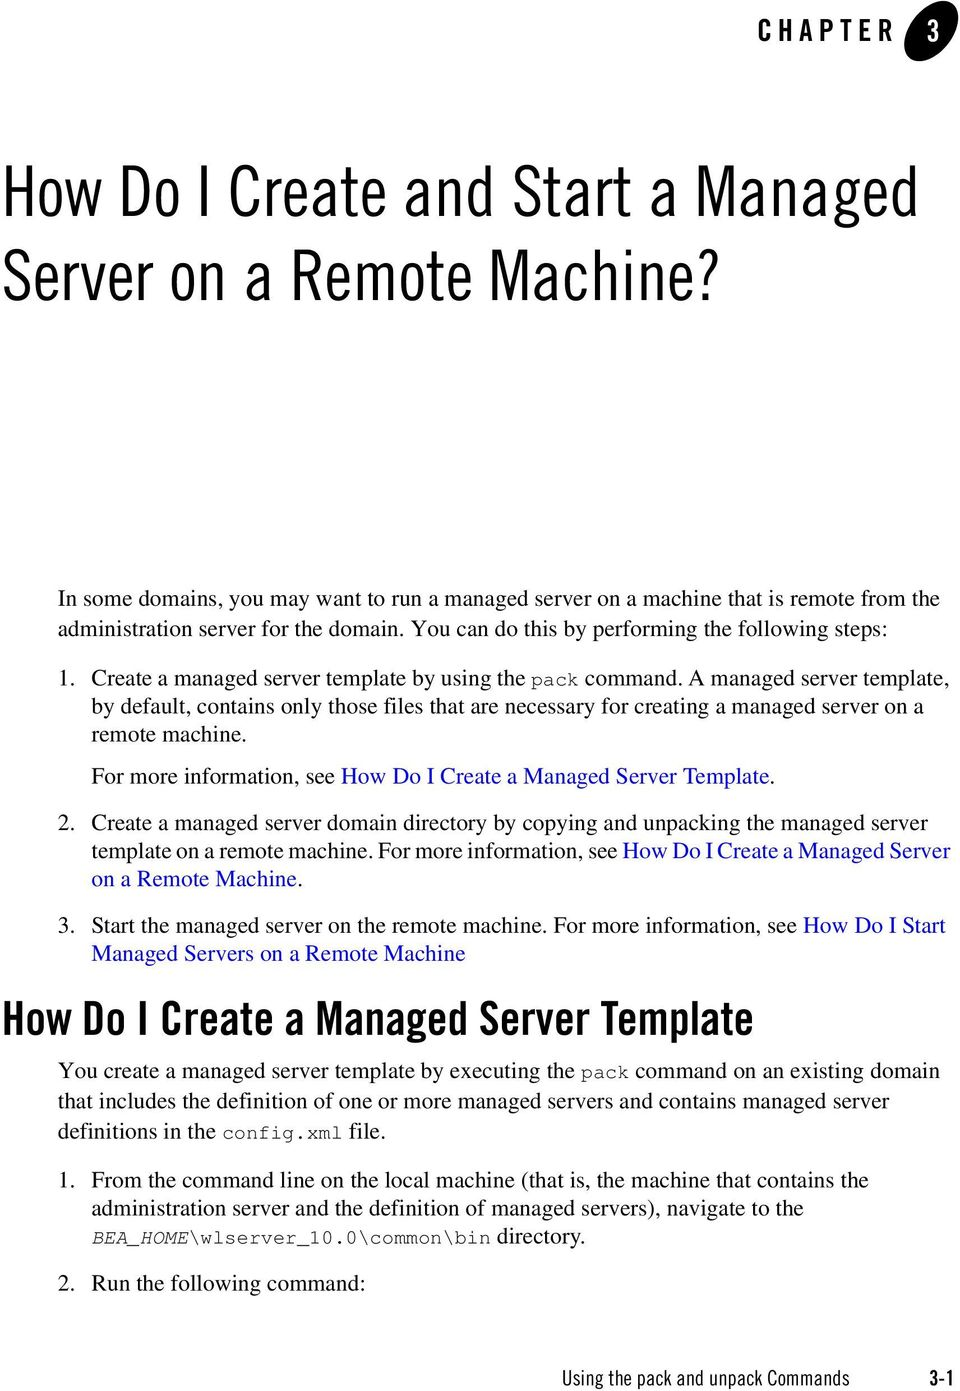 Create a managed server template by using the pack command. A managed server template, by default, contains only those files that are necessary for creating a managed server on a remote machine.